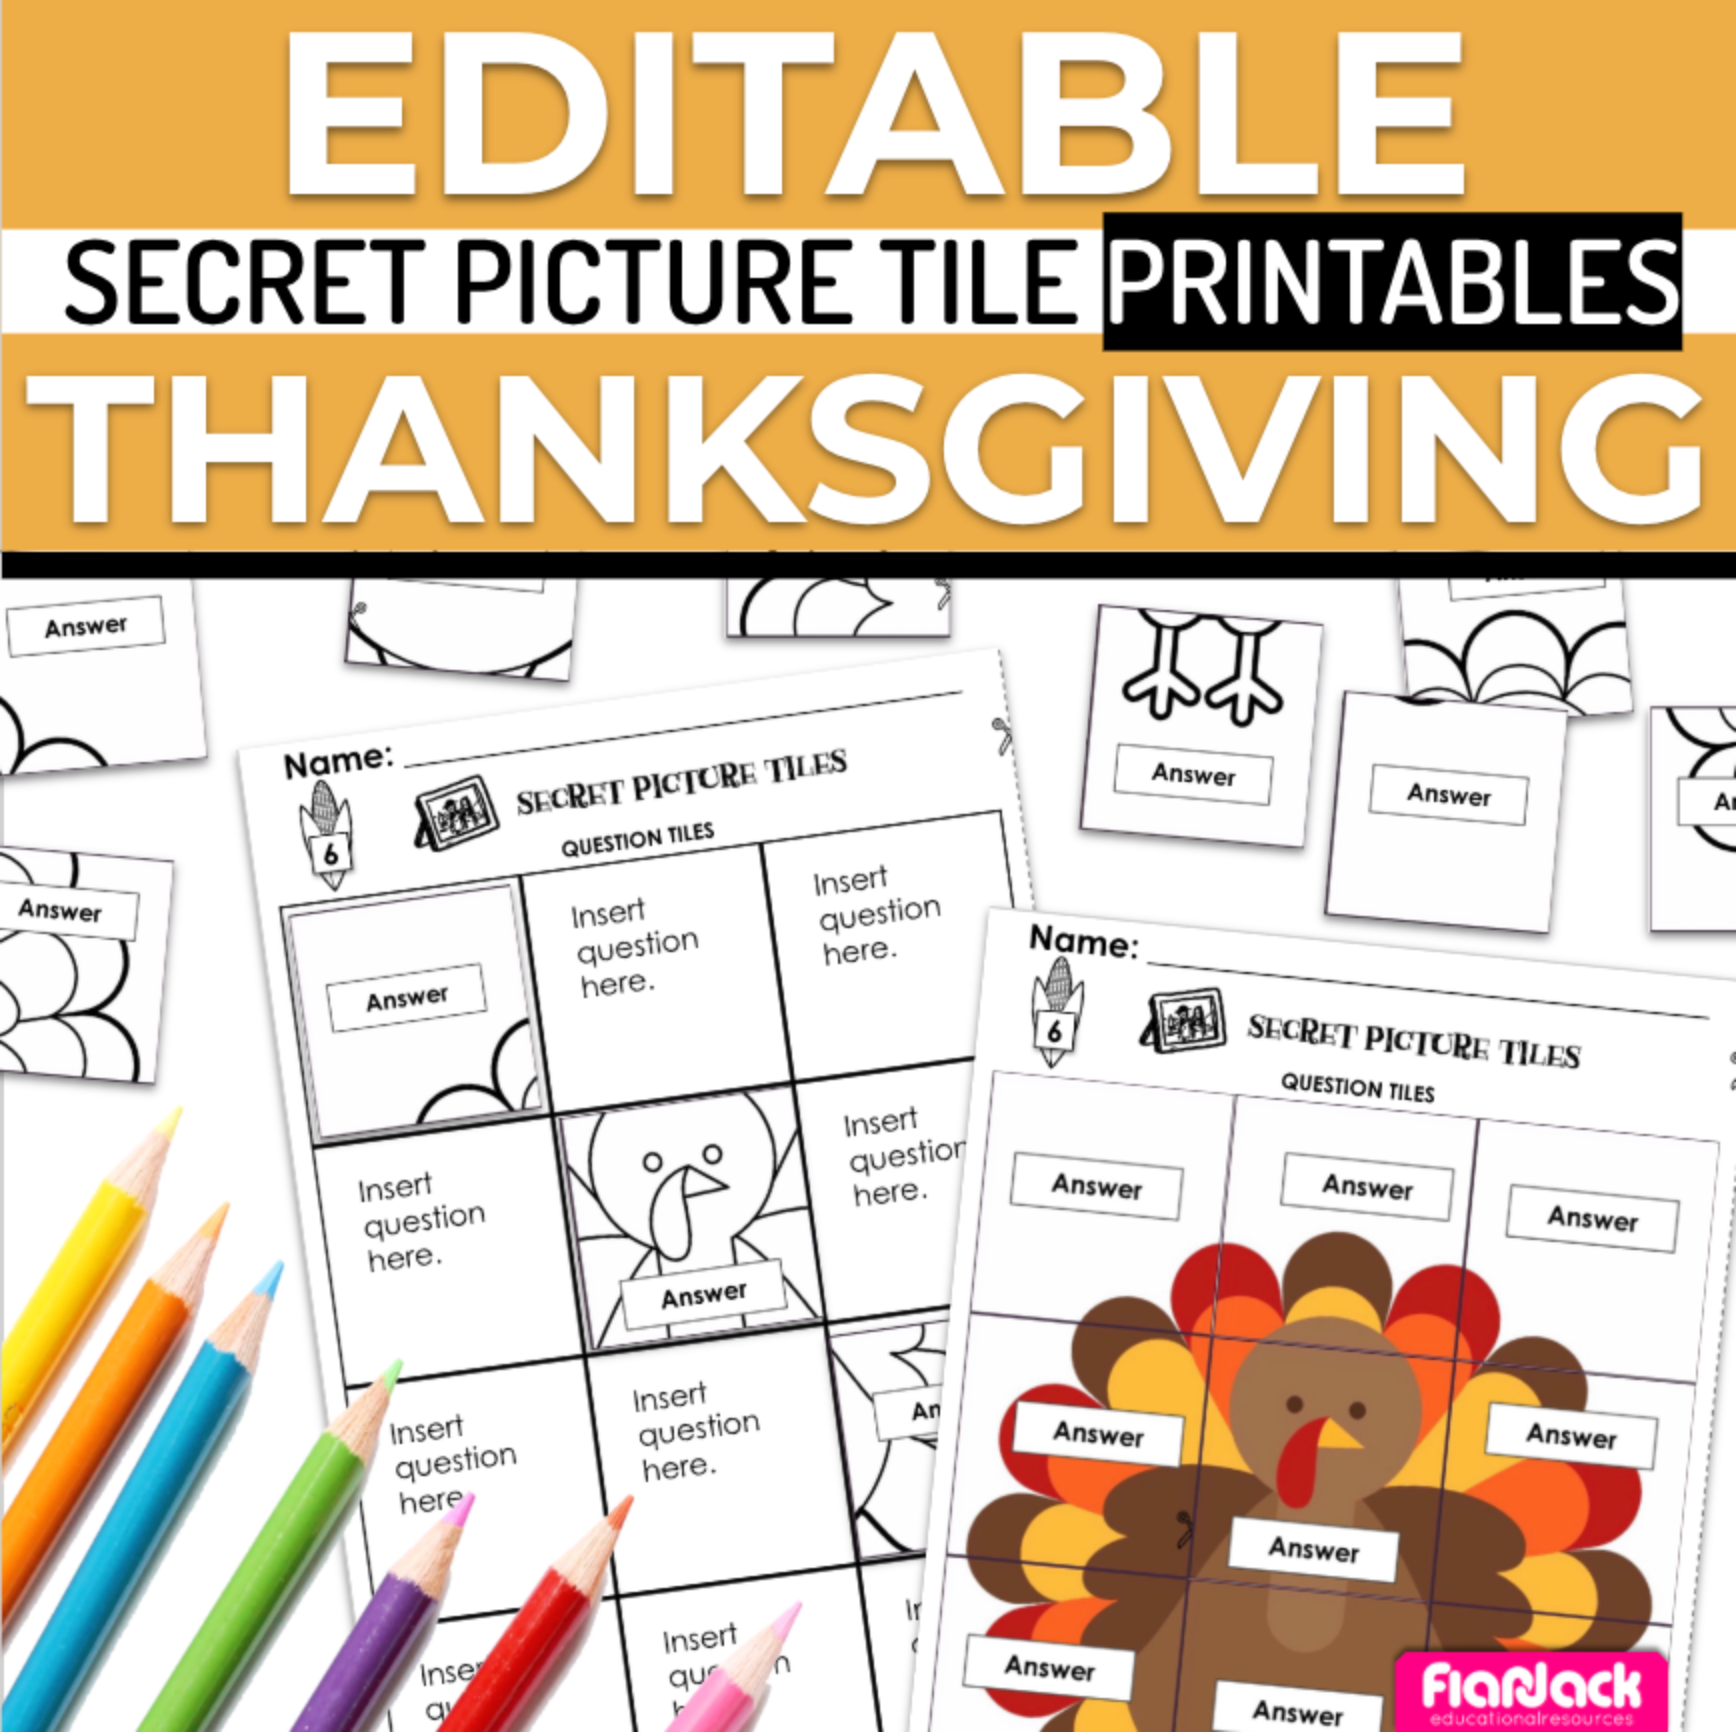 Thanksgiving EDITABLE Secret Picture Tile Printables